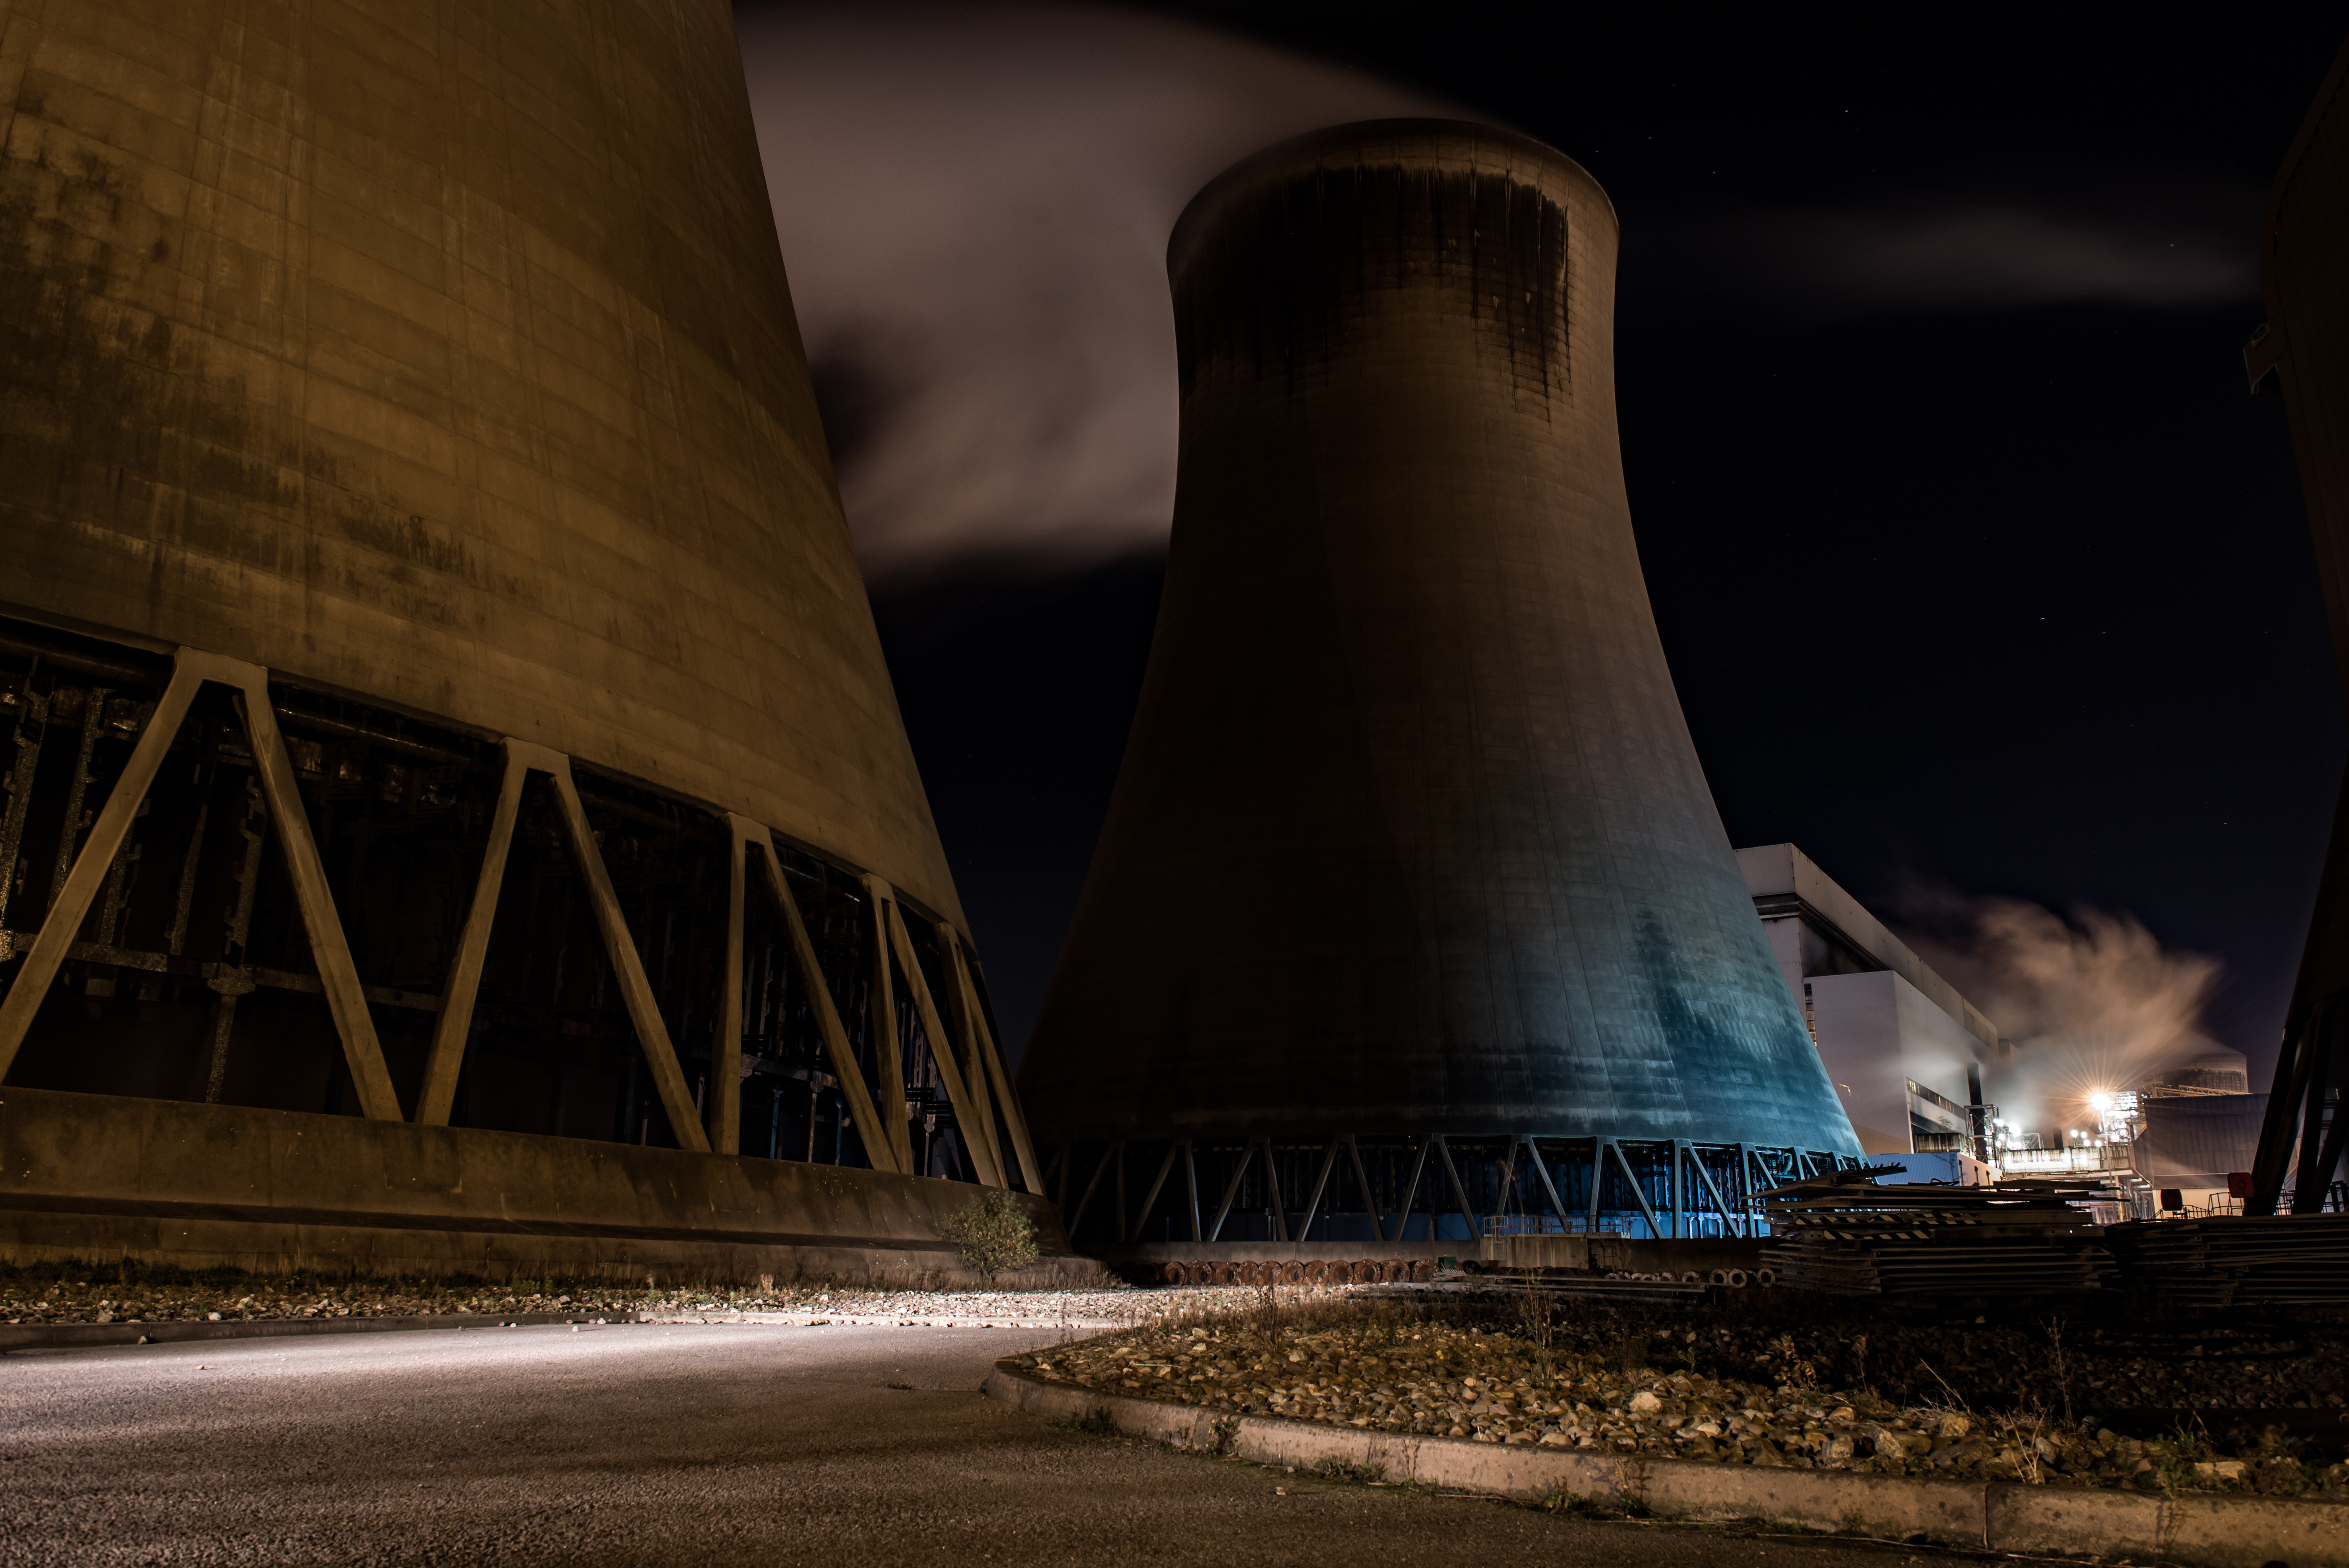 The nightshift at Drax Power Station